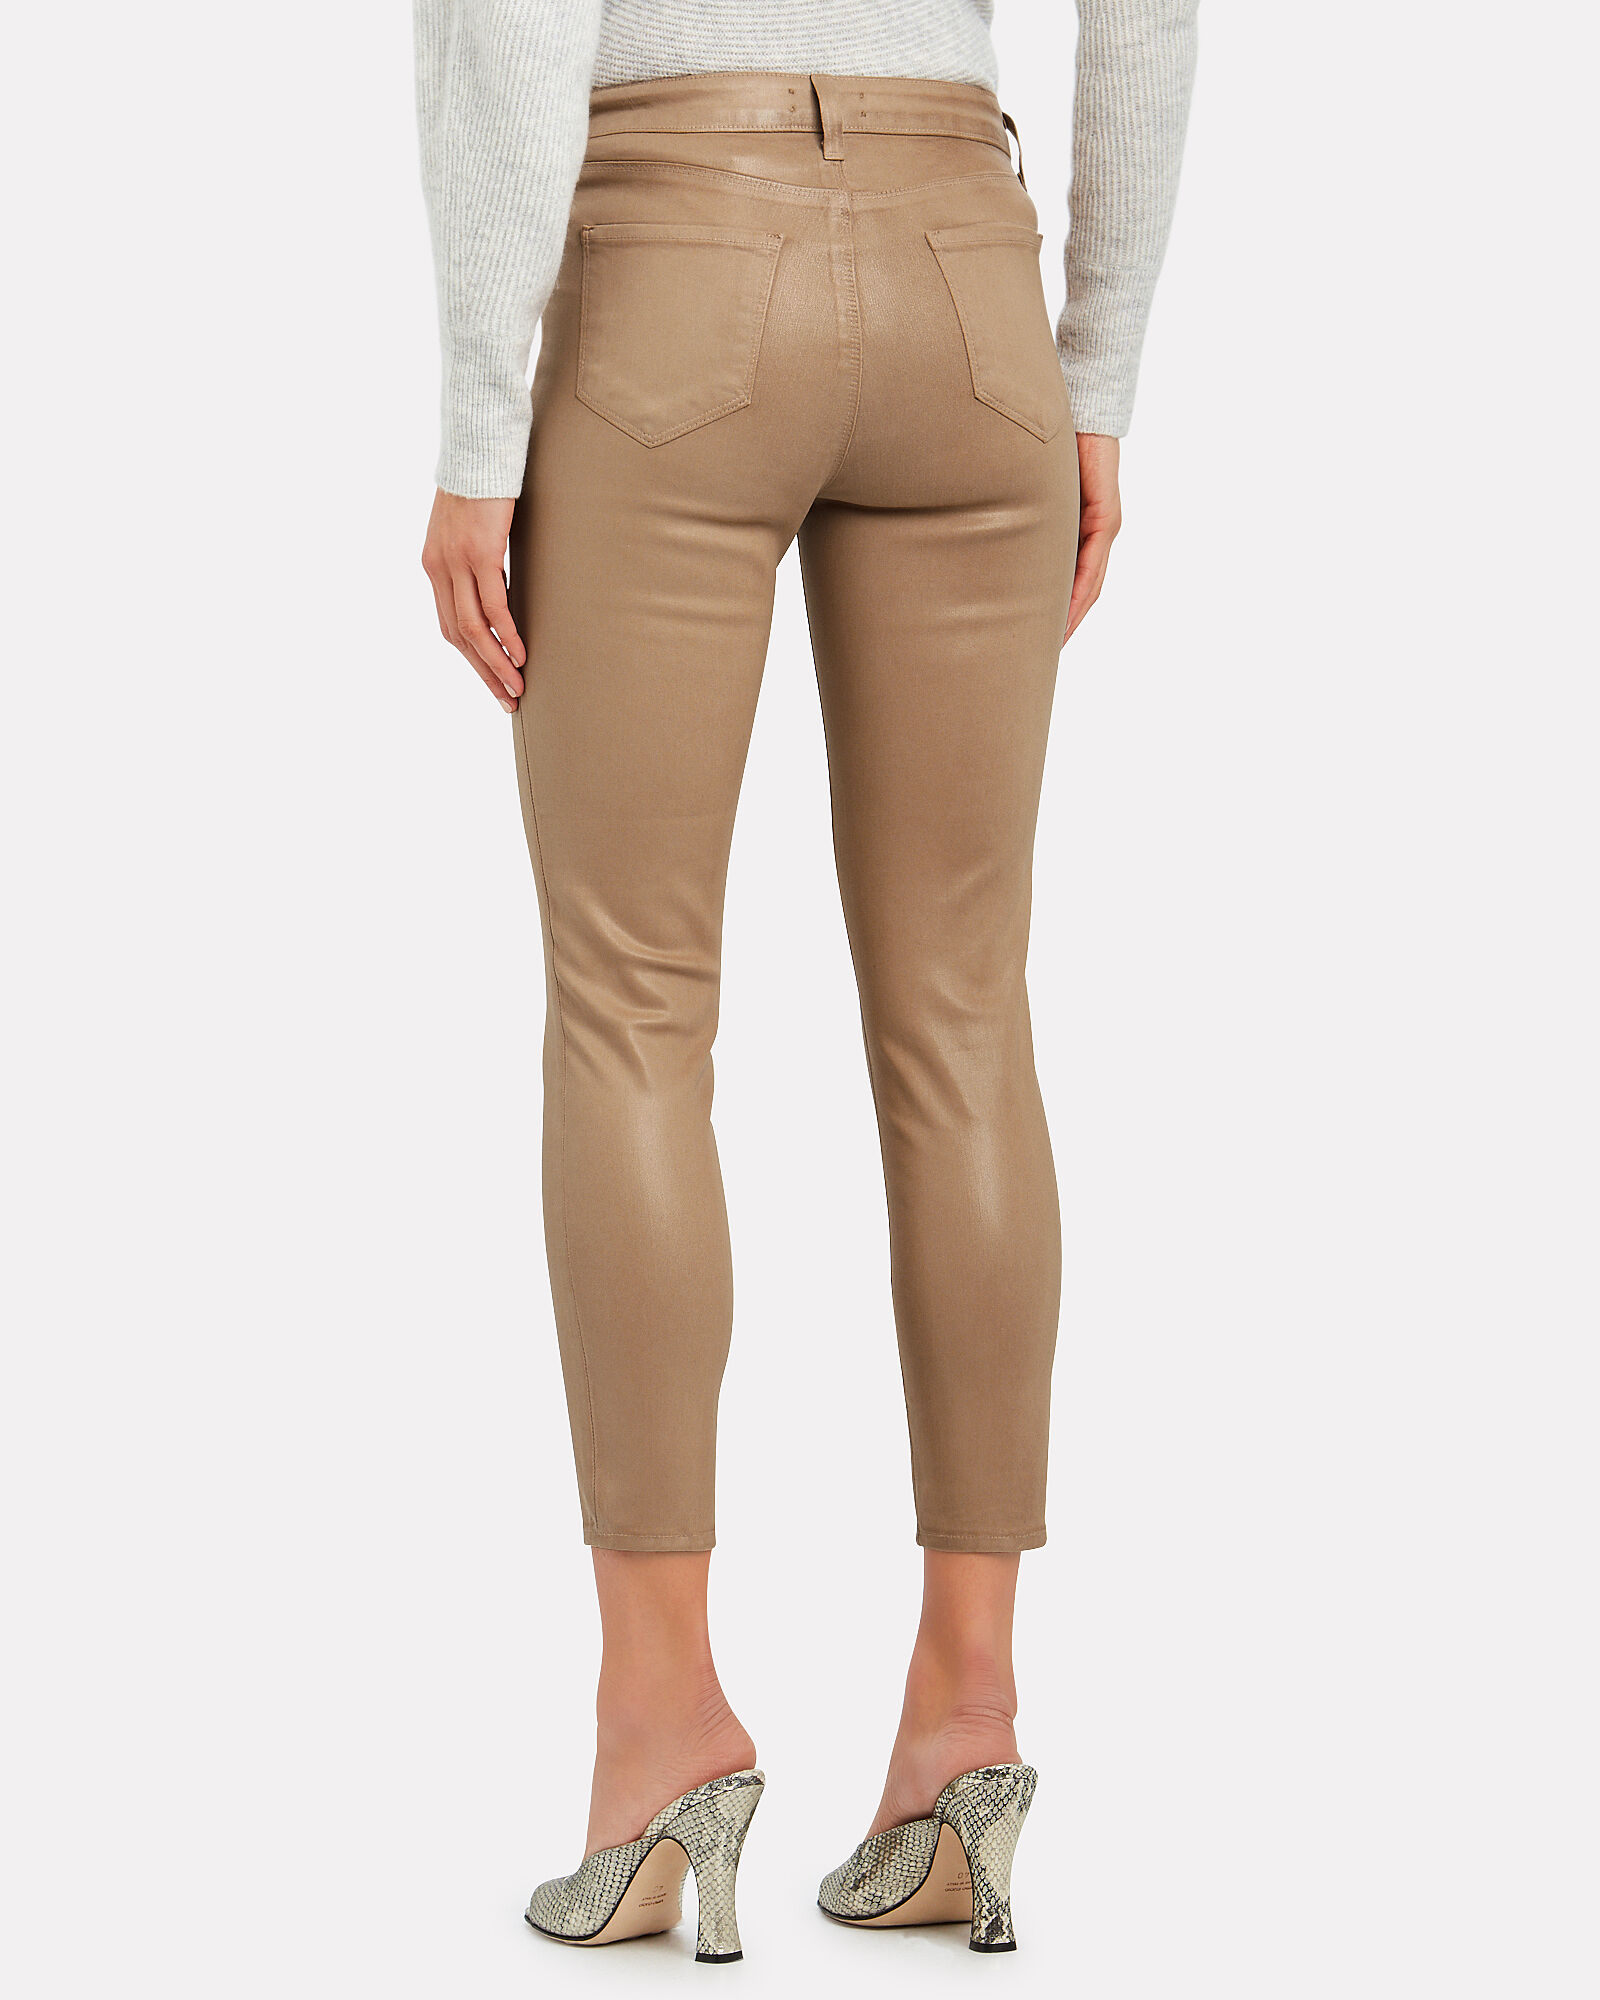 Margot Coated High-Rise Skinny Jeans, CAPPUCCINO, hi-res